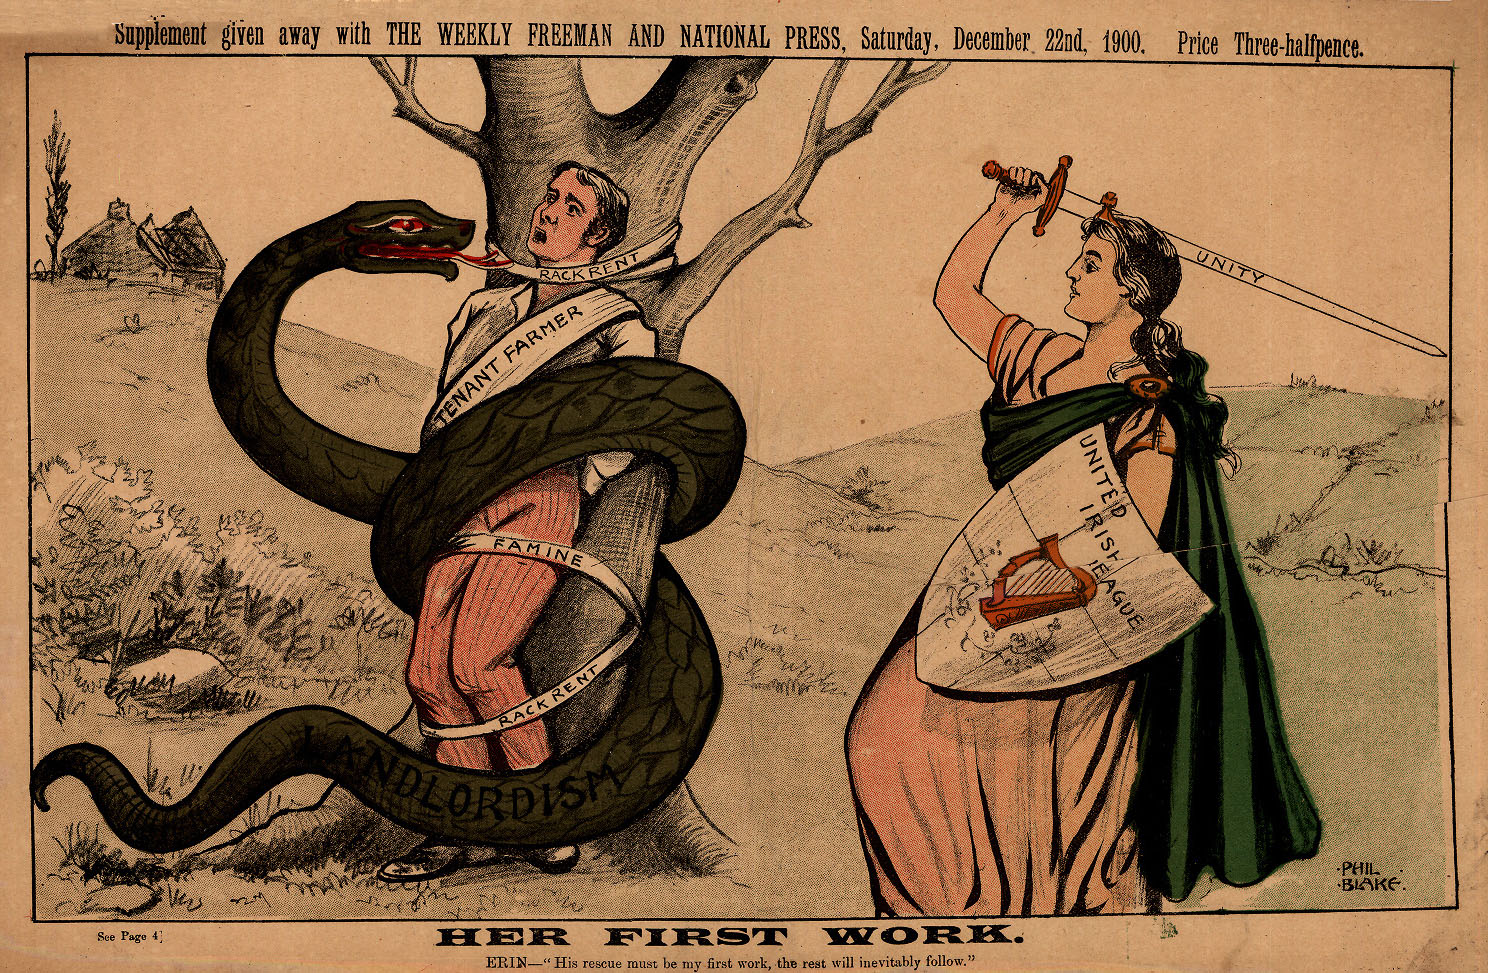 Reversed gender roles in a Phil Blake cartoon from the Weekly Freeman, 1900